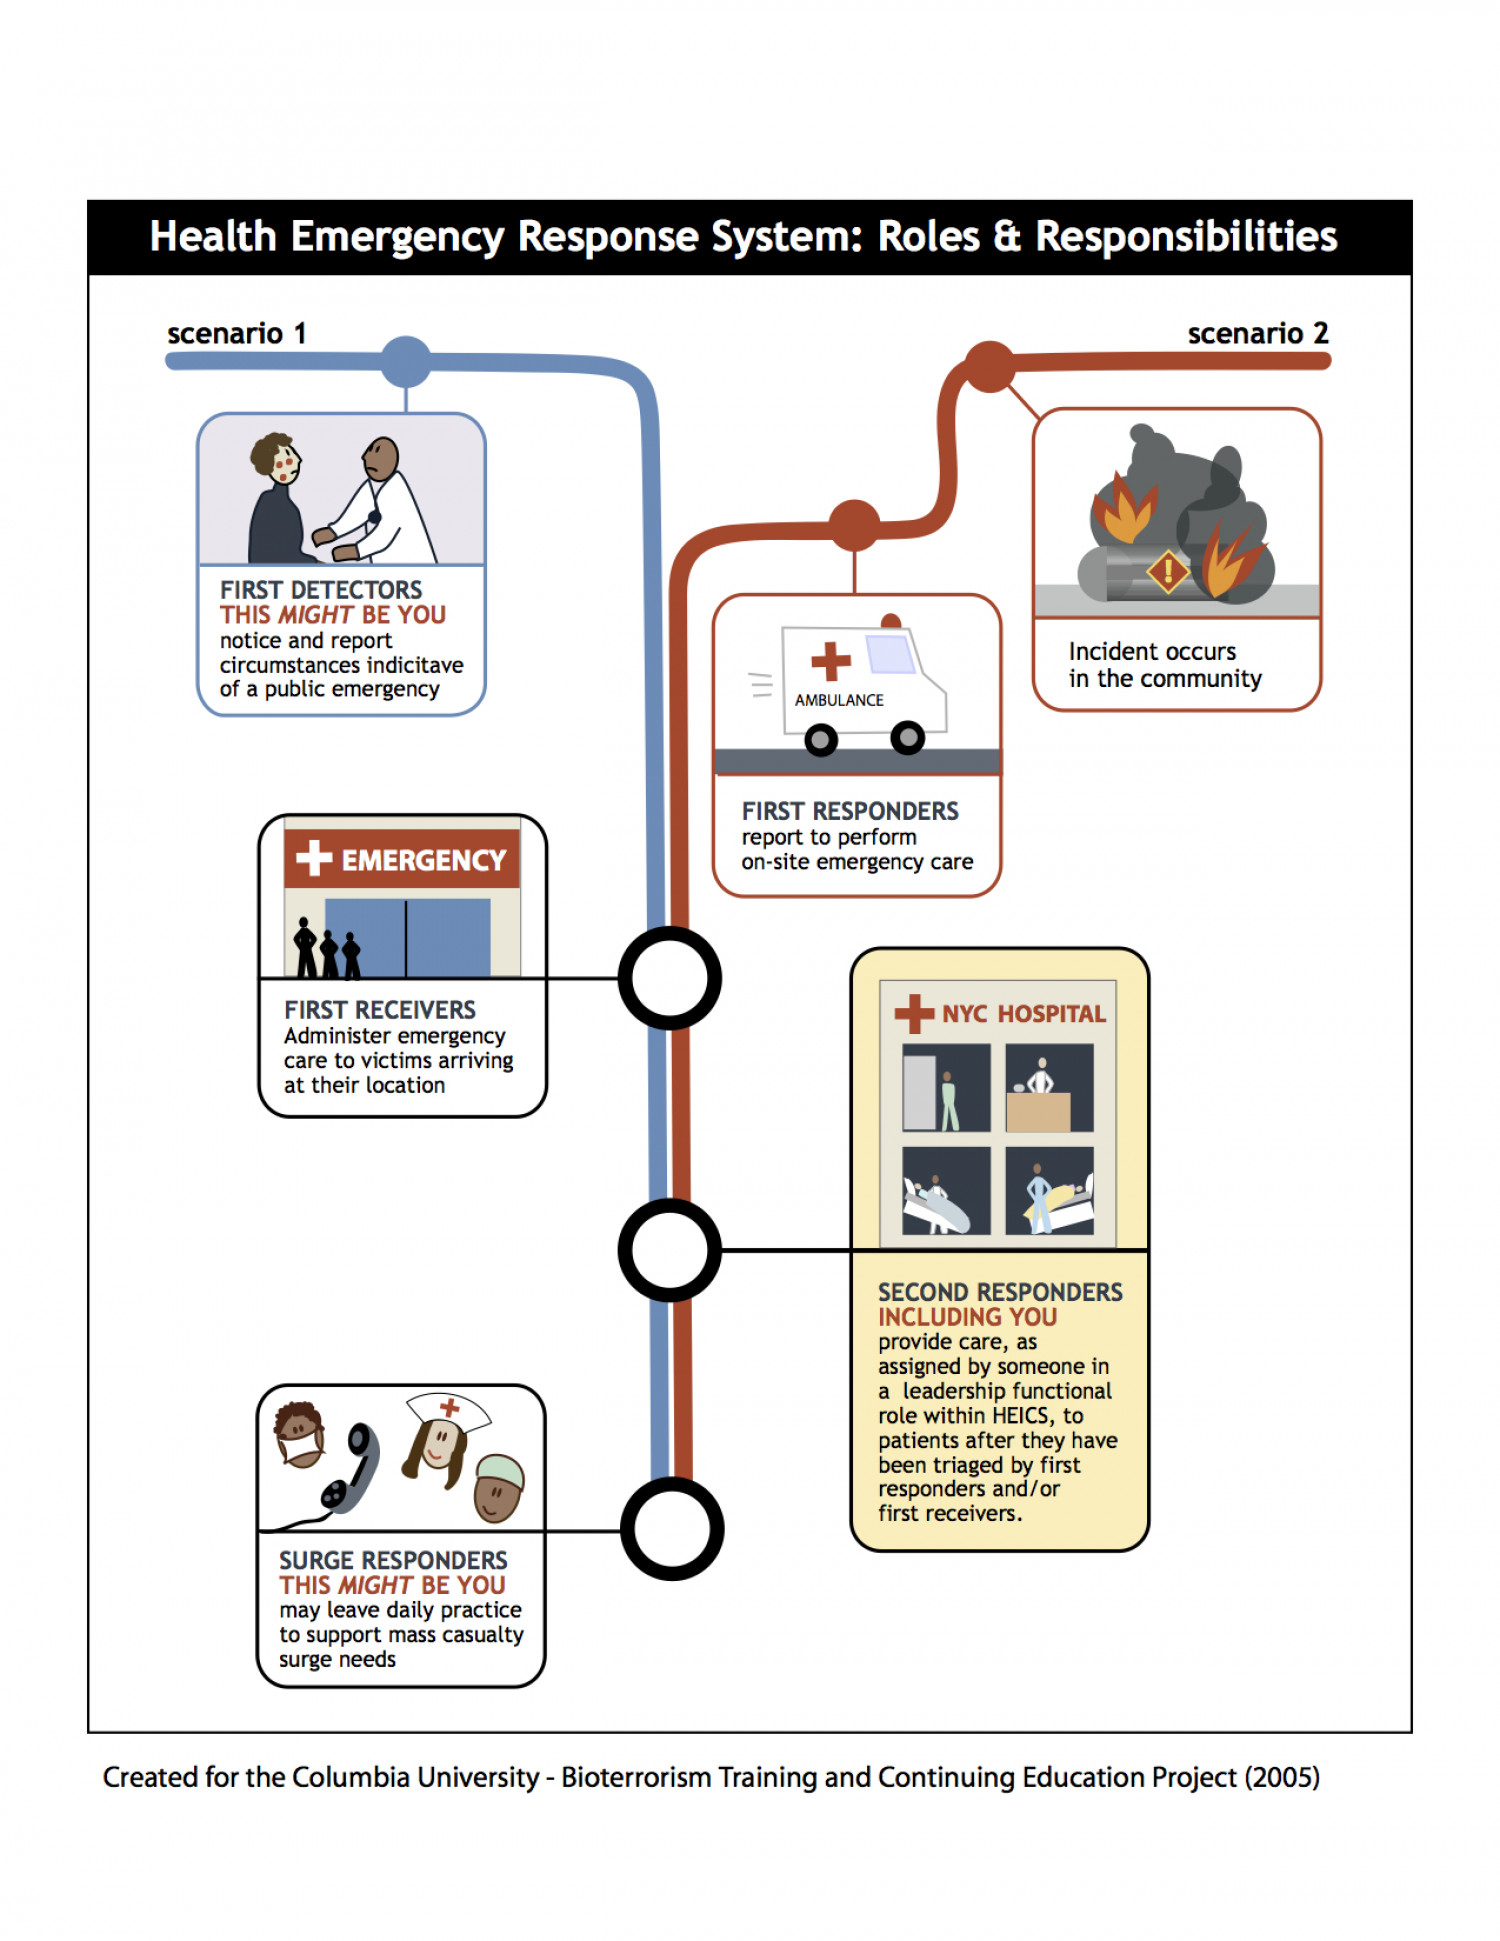 Health Emergency Response System: Roles & Responsibilities Infographic